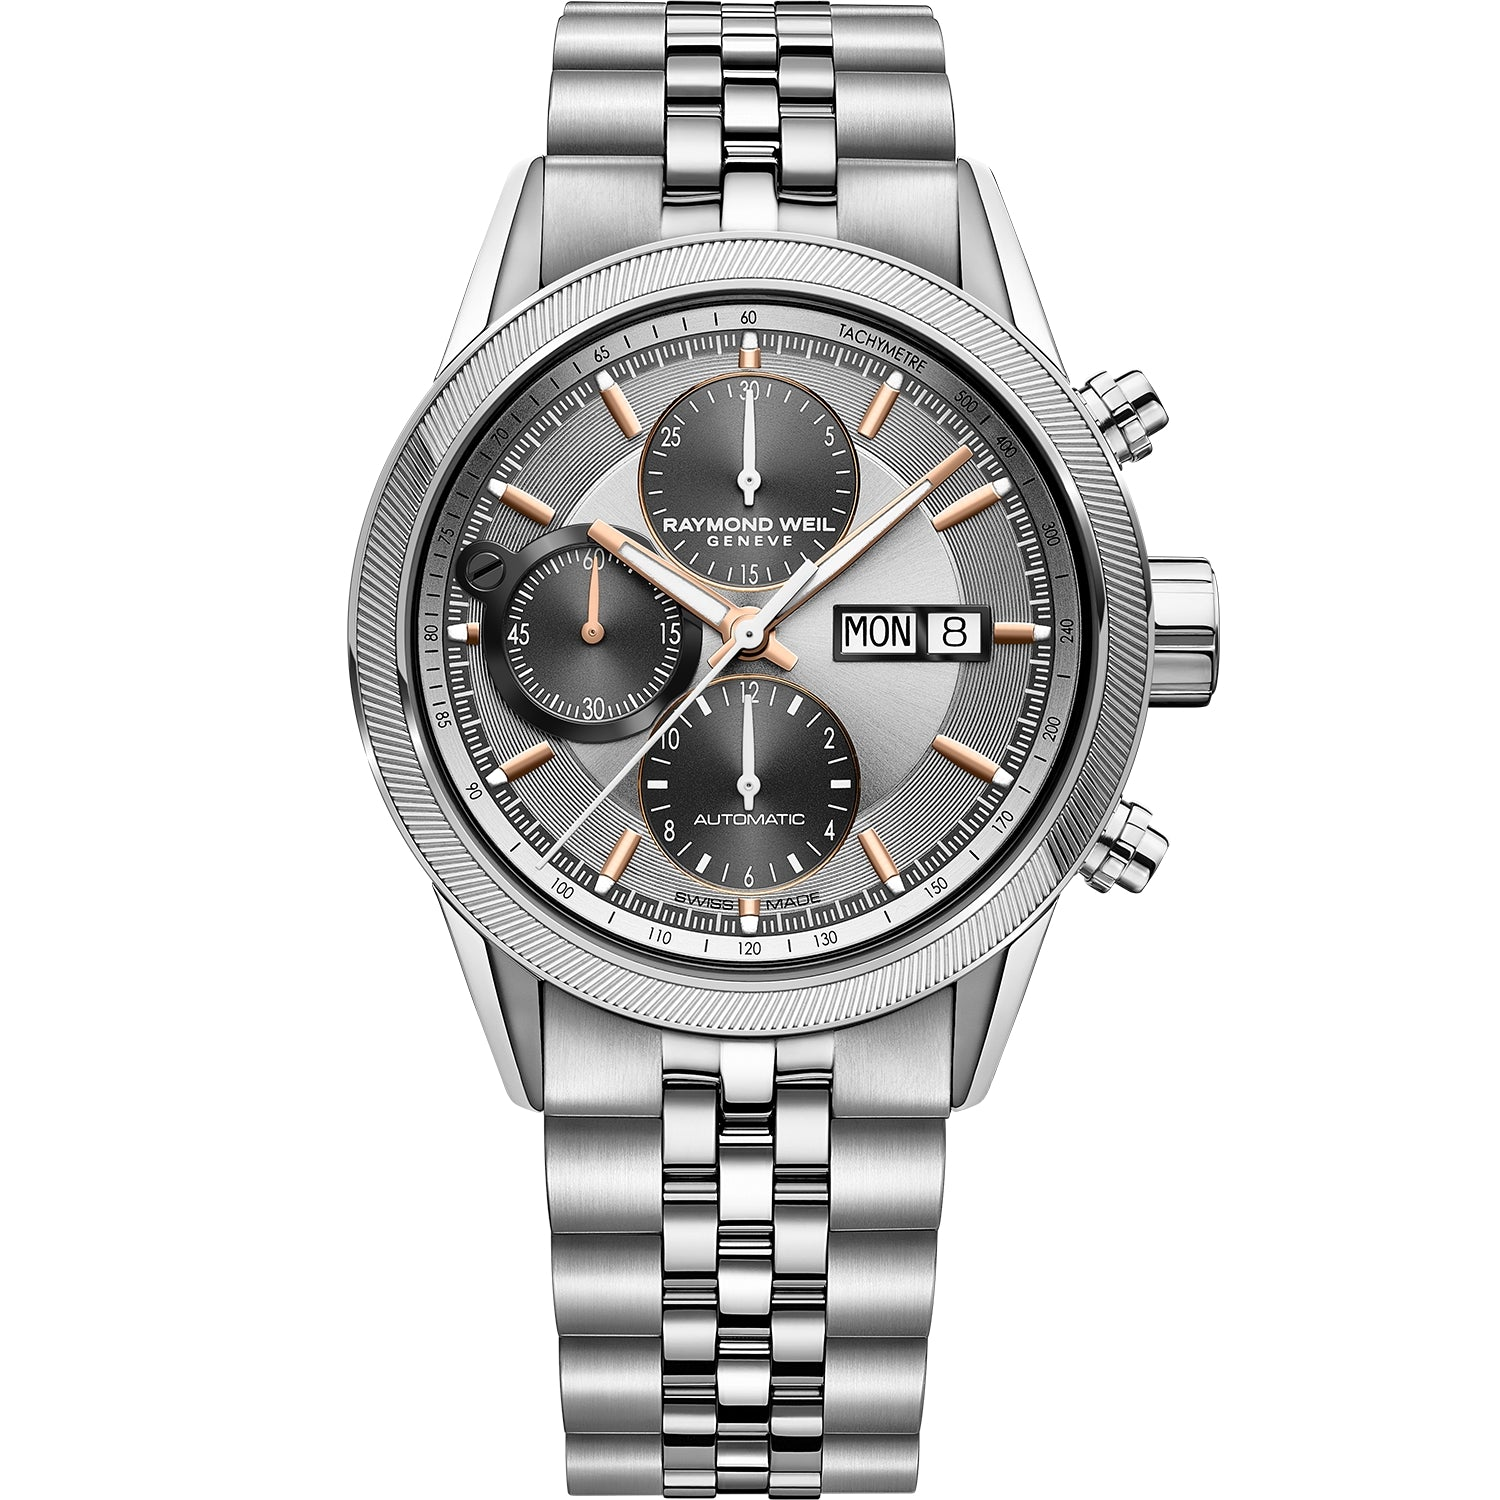 Freelancer Men's Automatic Chronograph Silver Dial Watch 7731-ST2-65655